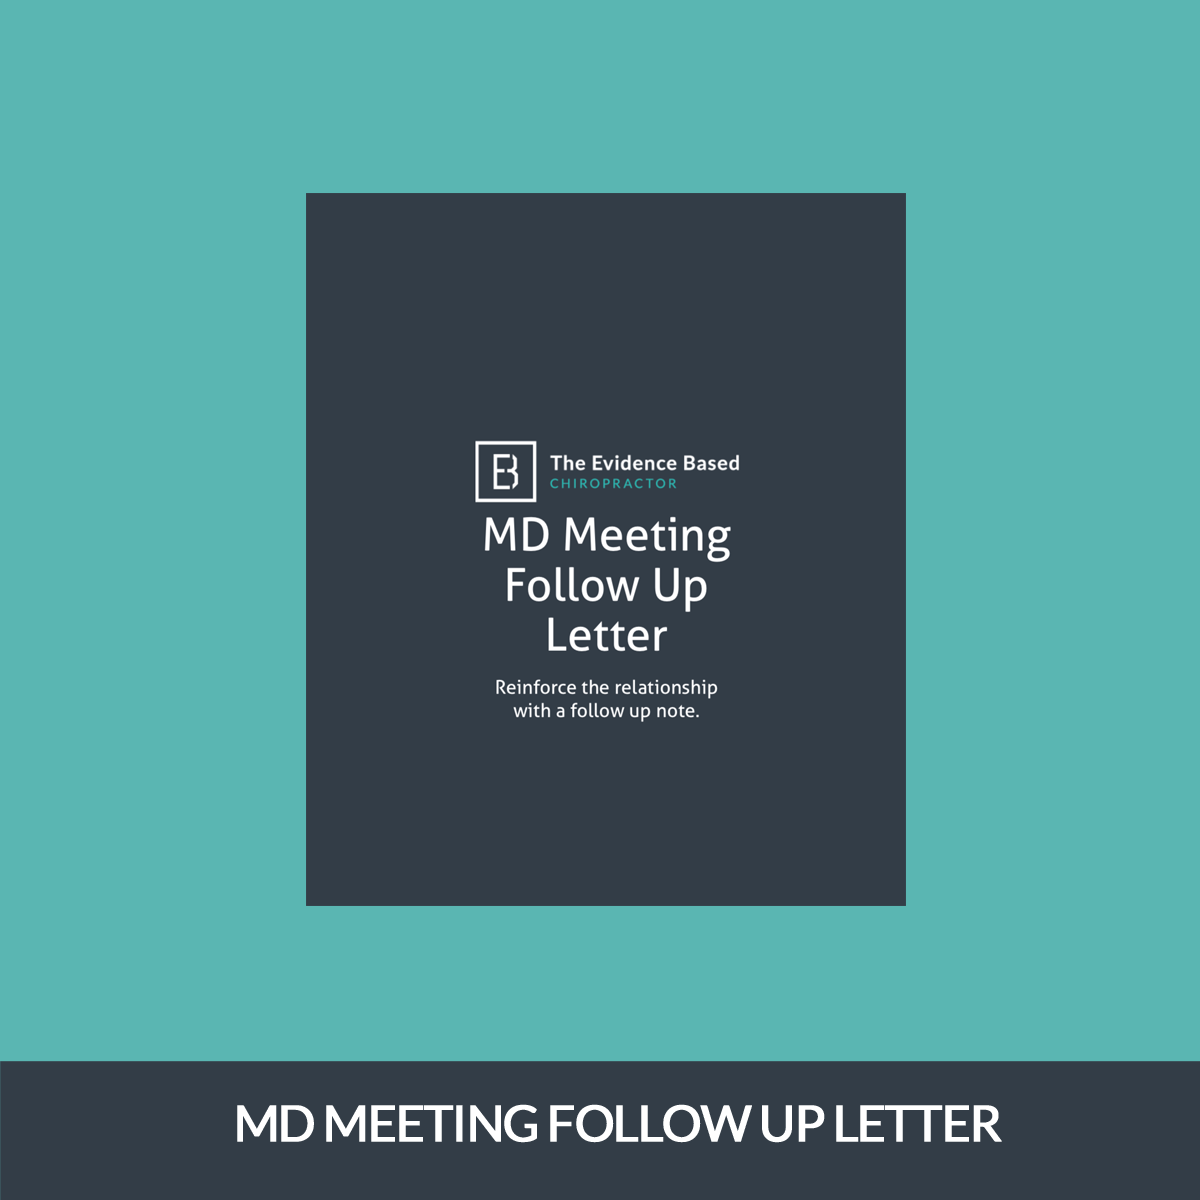 MD MEETING FOLLOW UP LETTER-squashed.png